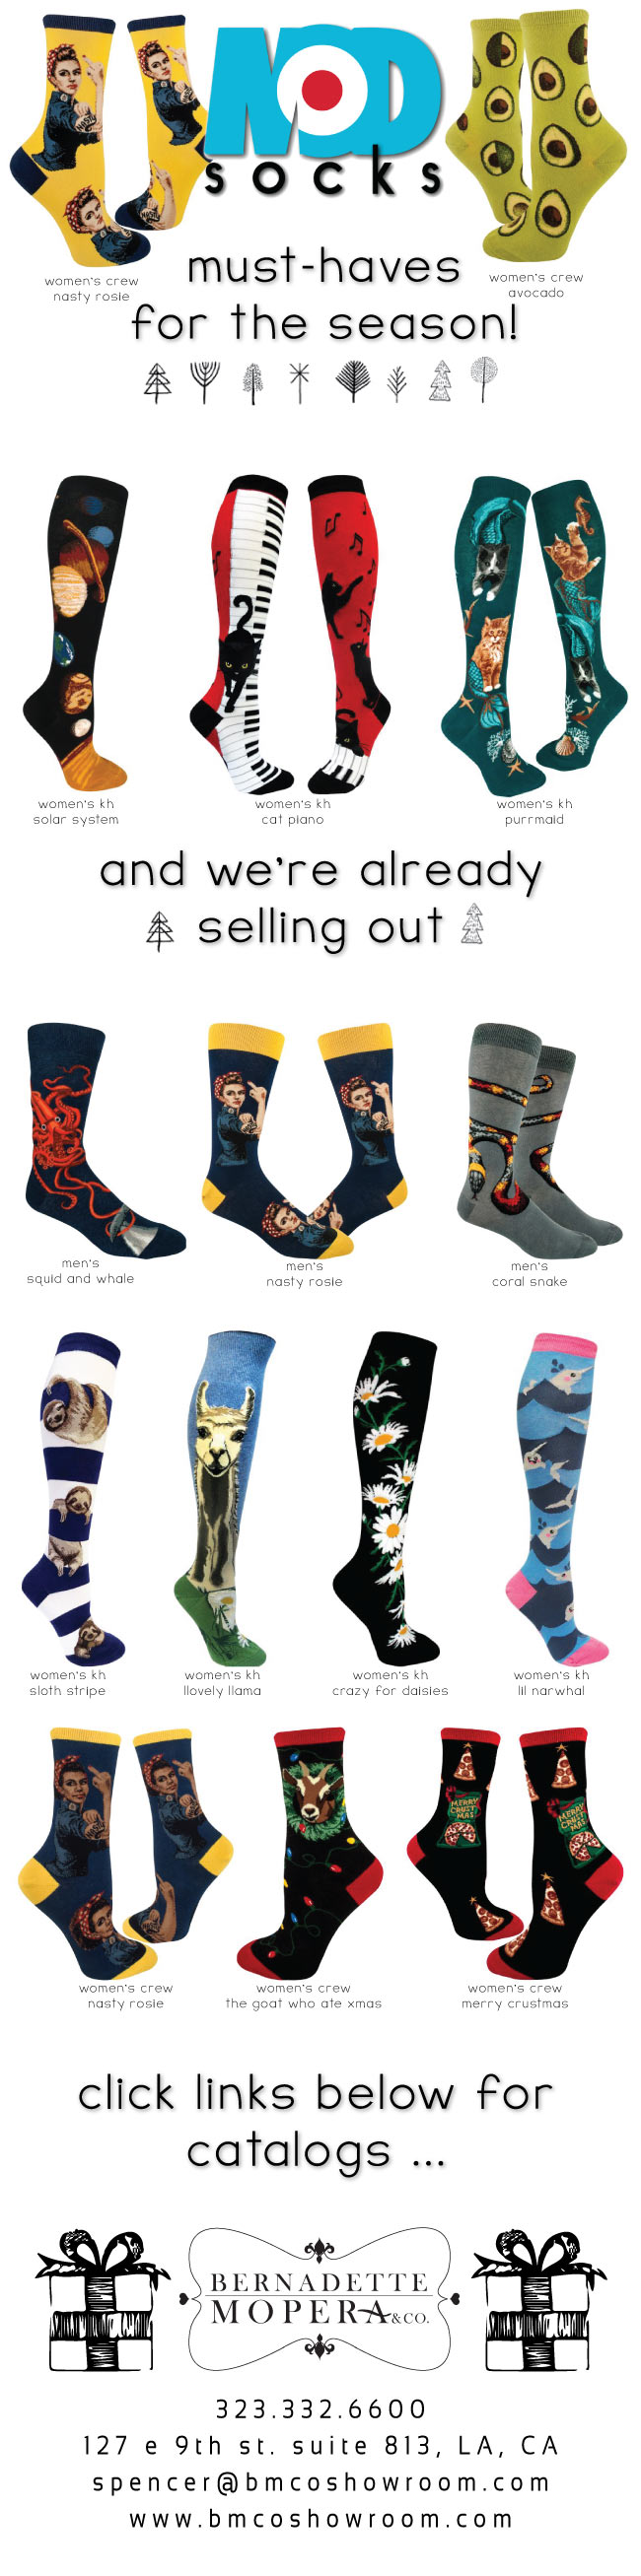 MODSOCK-MUST-HAVES.jpg